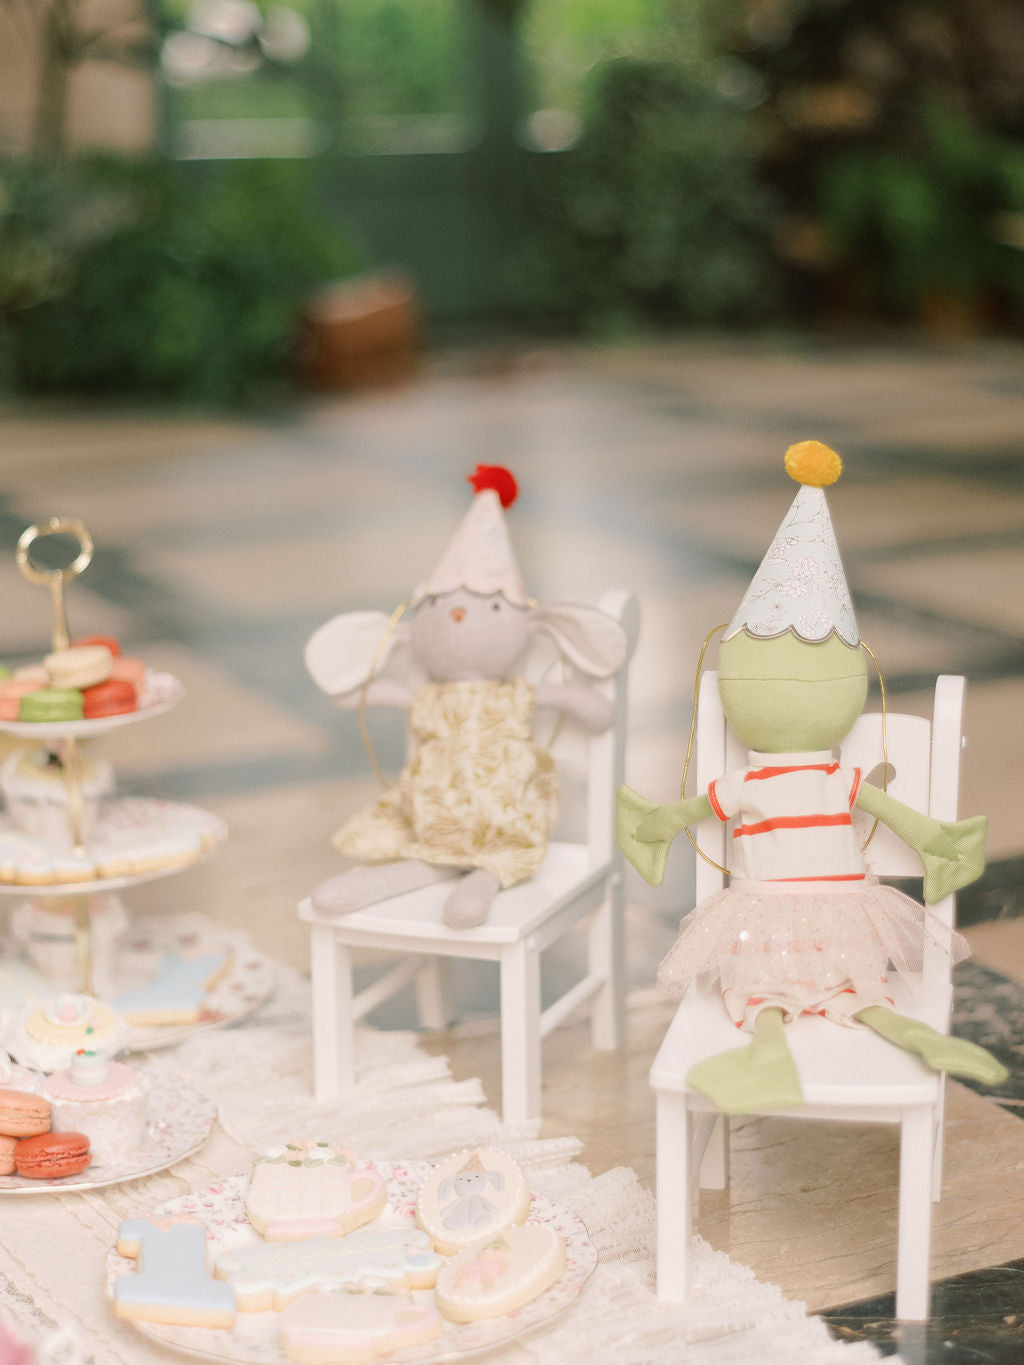 Tea party children's birthday inspiration